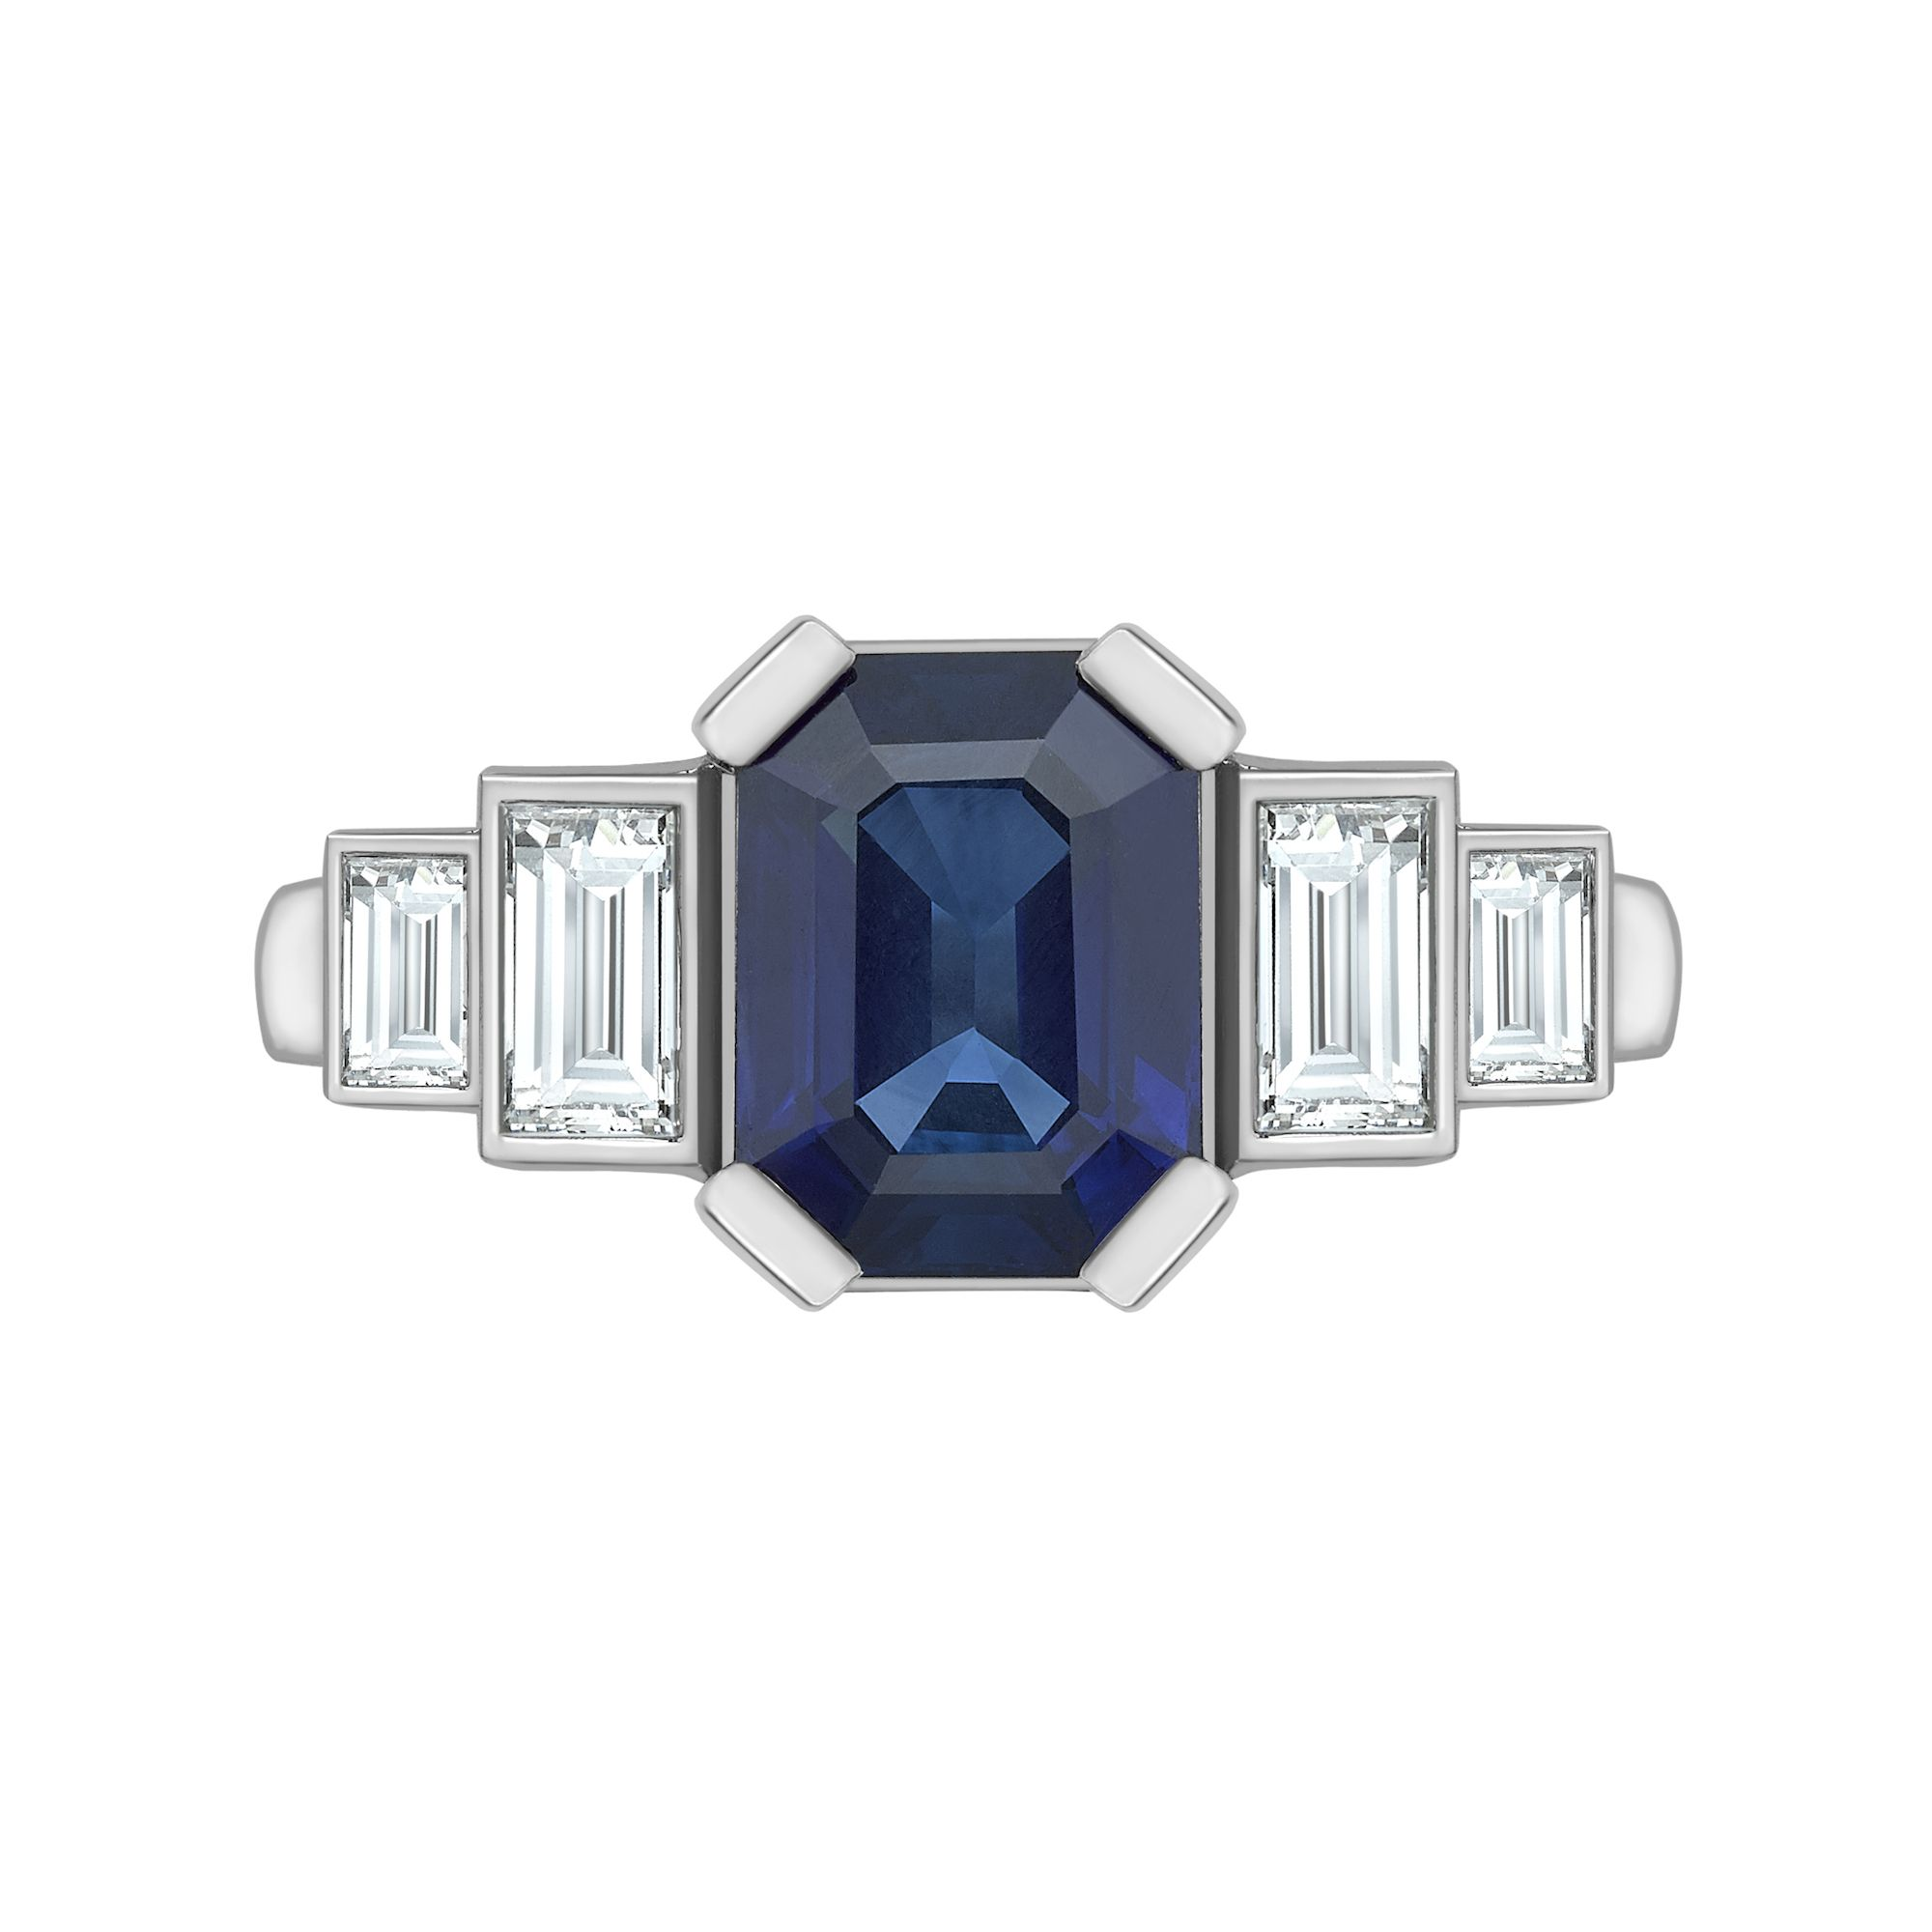 platinum by ring sapphire cut pin centering approximately an emerald measuring diamond and baguette